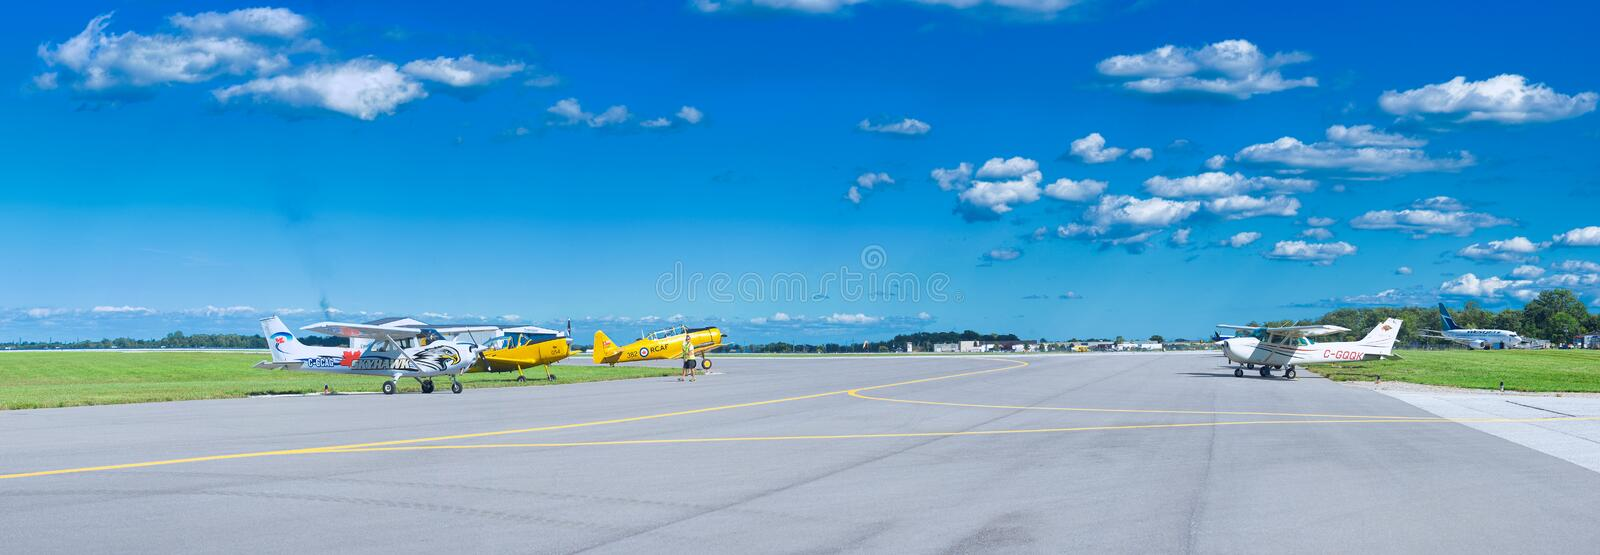 WINDSOR, CANADA - SEPT 10, 2016: Panoramic view of canadian jet. Aircrafts in exhibit at the Windsor Aviation Museum, taken in Windsor, Ontario stock photos